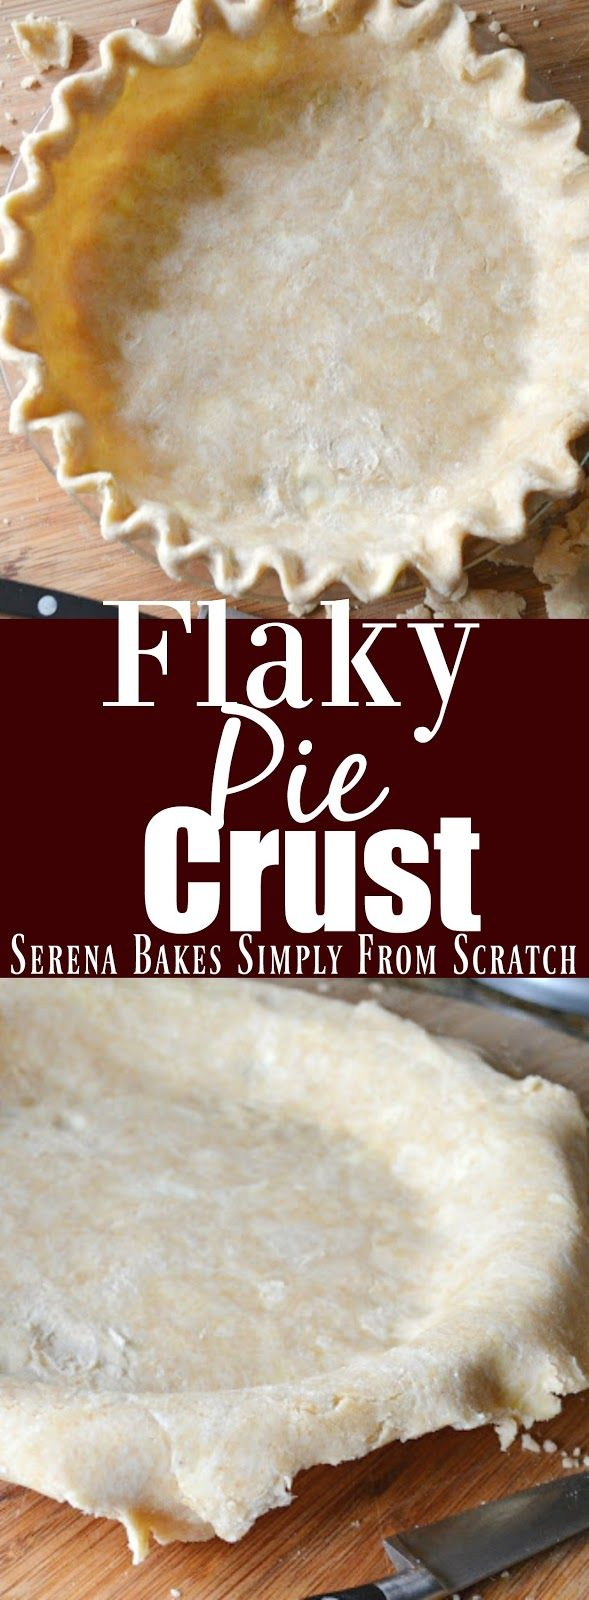 296 Best Homesteading Images On Pinterest Bay Area Meat Csa In Transition Chicken Recipes Flaky Pie Crust